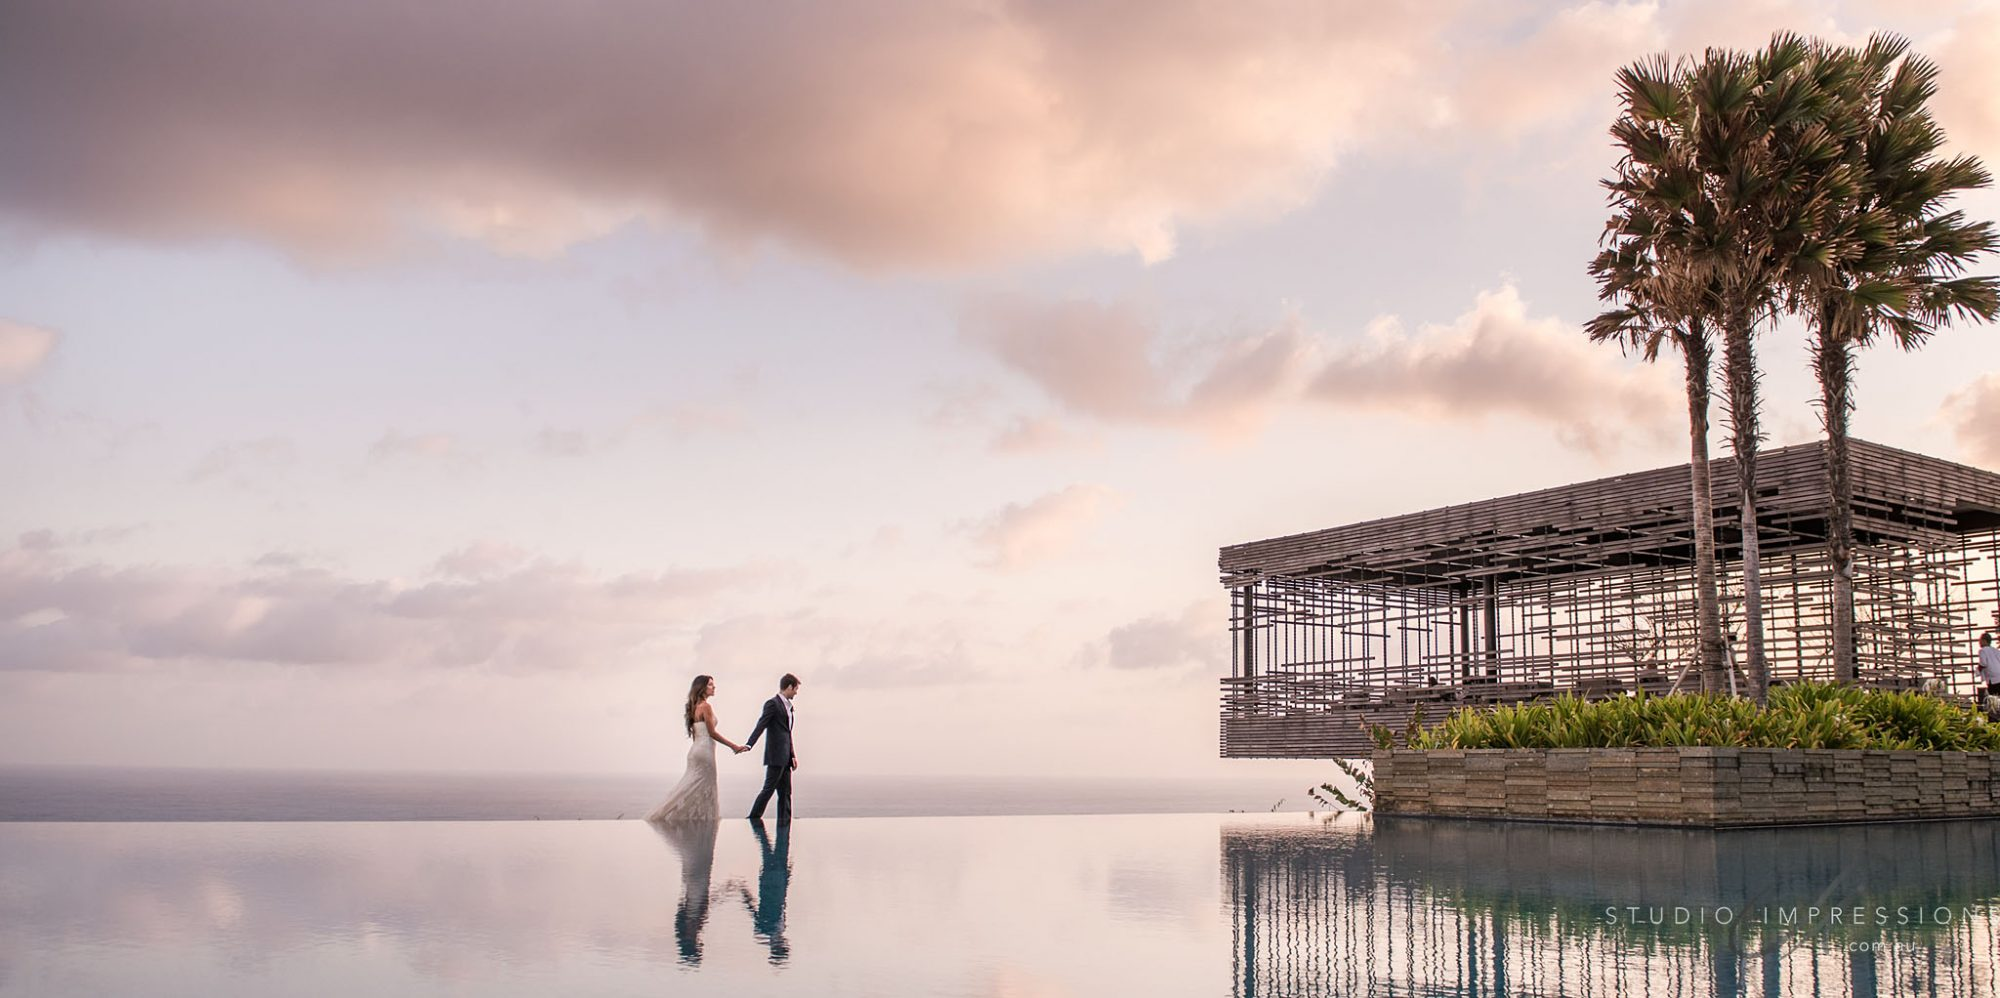 Picturesque Photo of Wedding Venue in Alila Villas Uluwatu